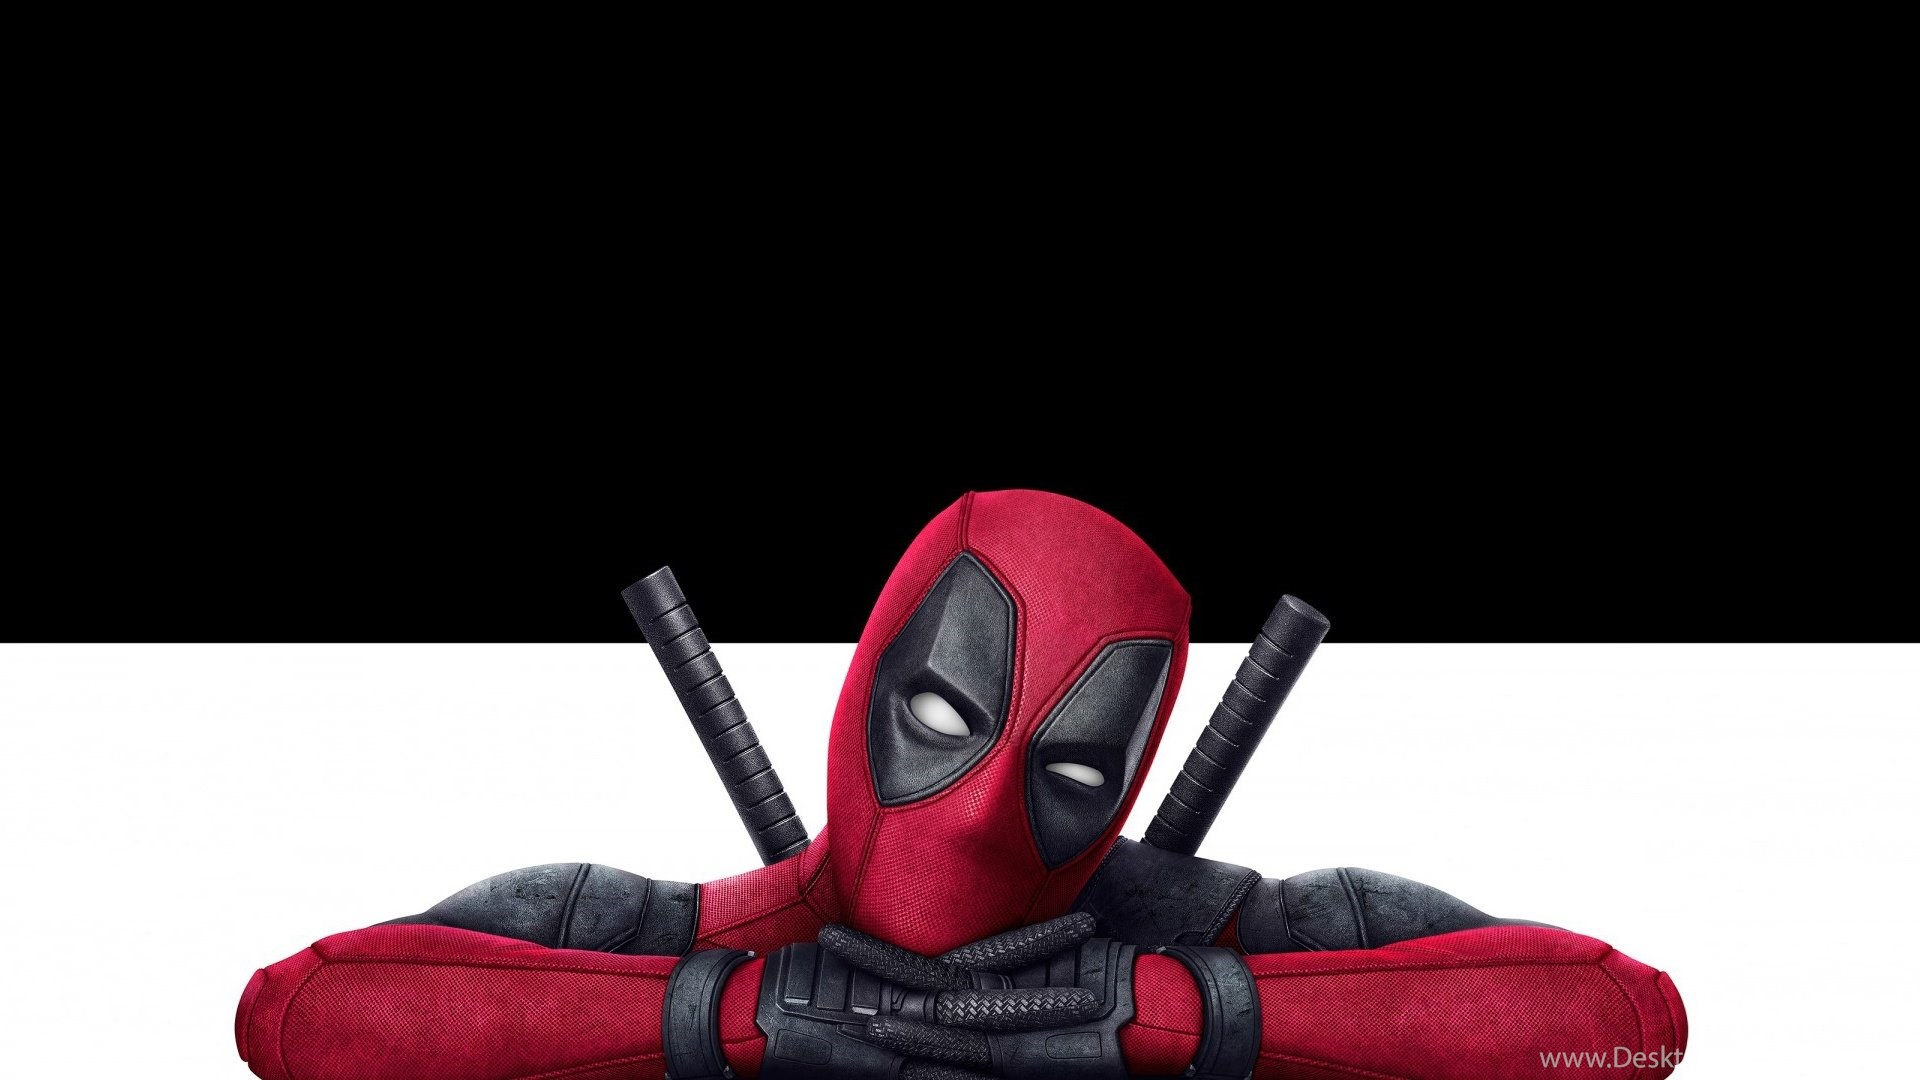 Movie wallpaper deadpool movie wallpapers high definition - Superhero iphone wallpaper hd ...